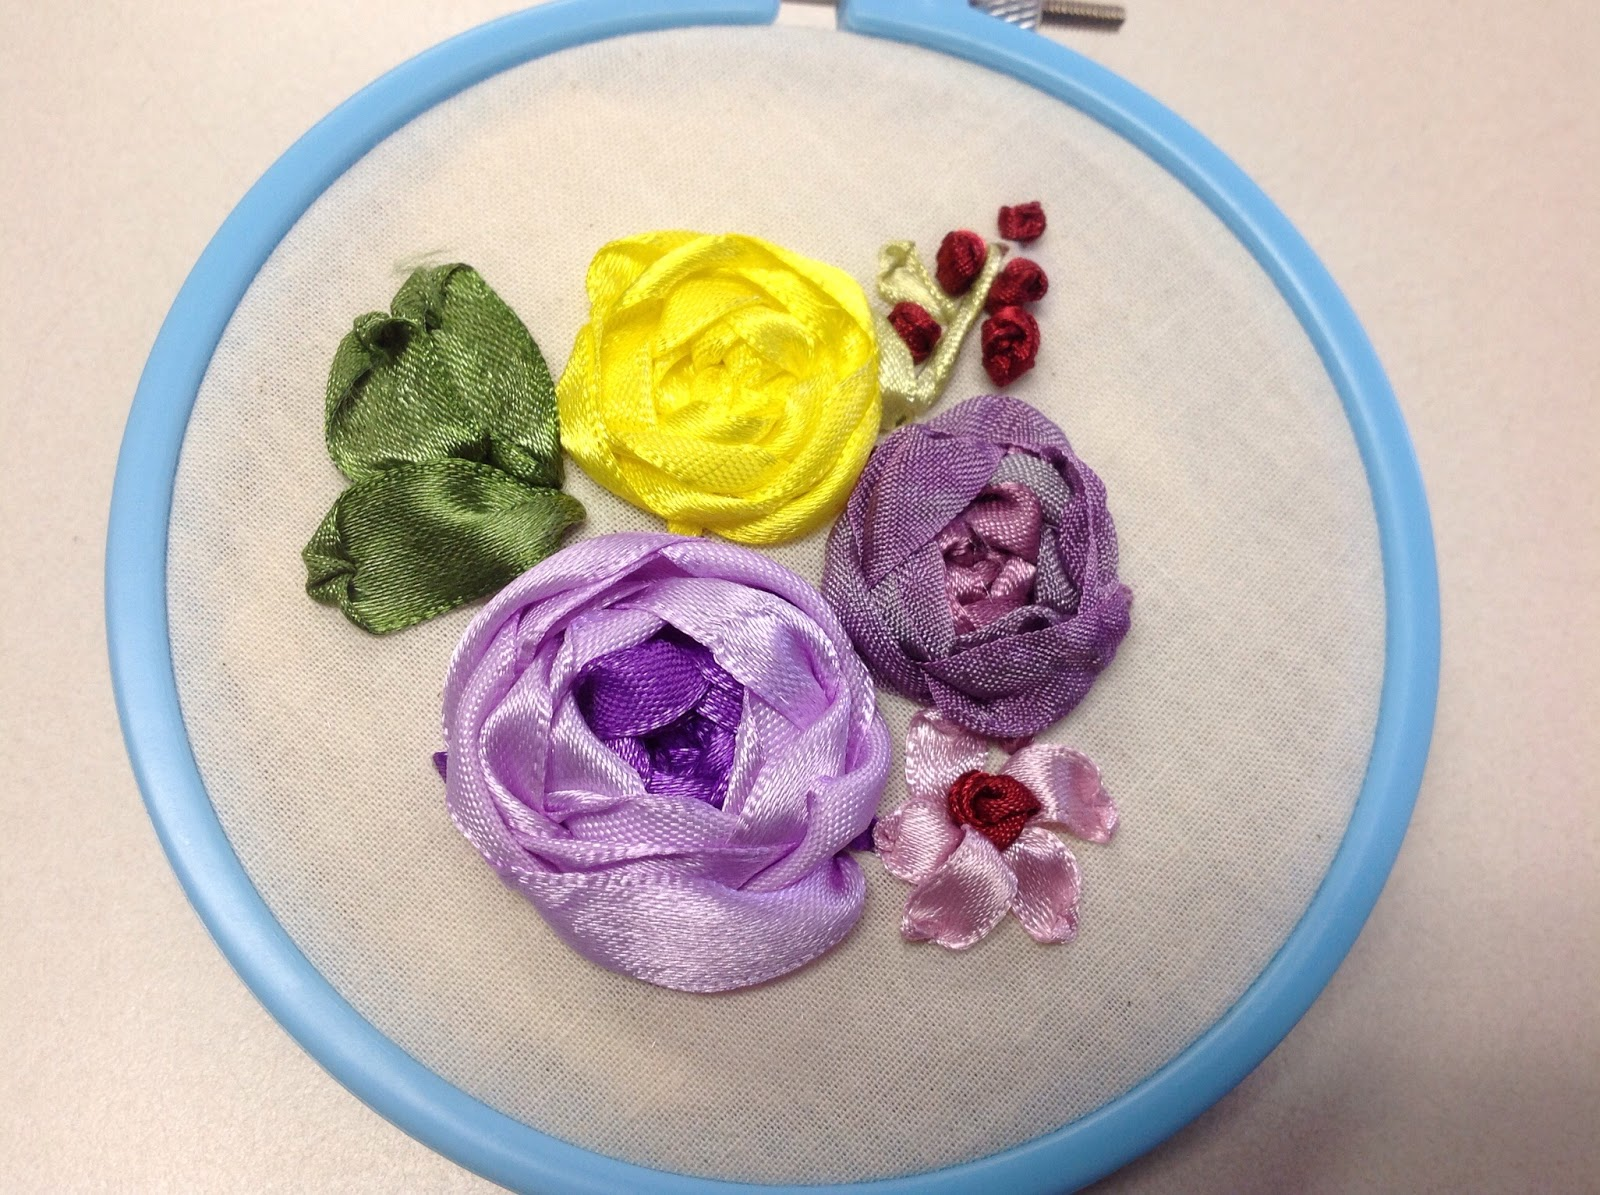 The World In Stitches Silk Ribbon Embroidery Class